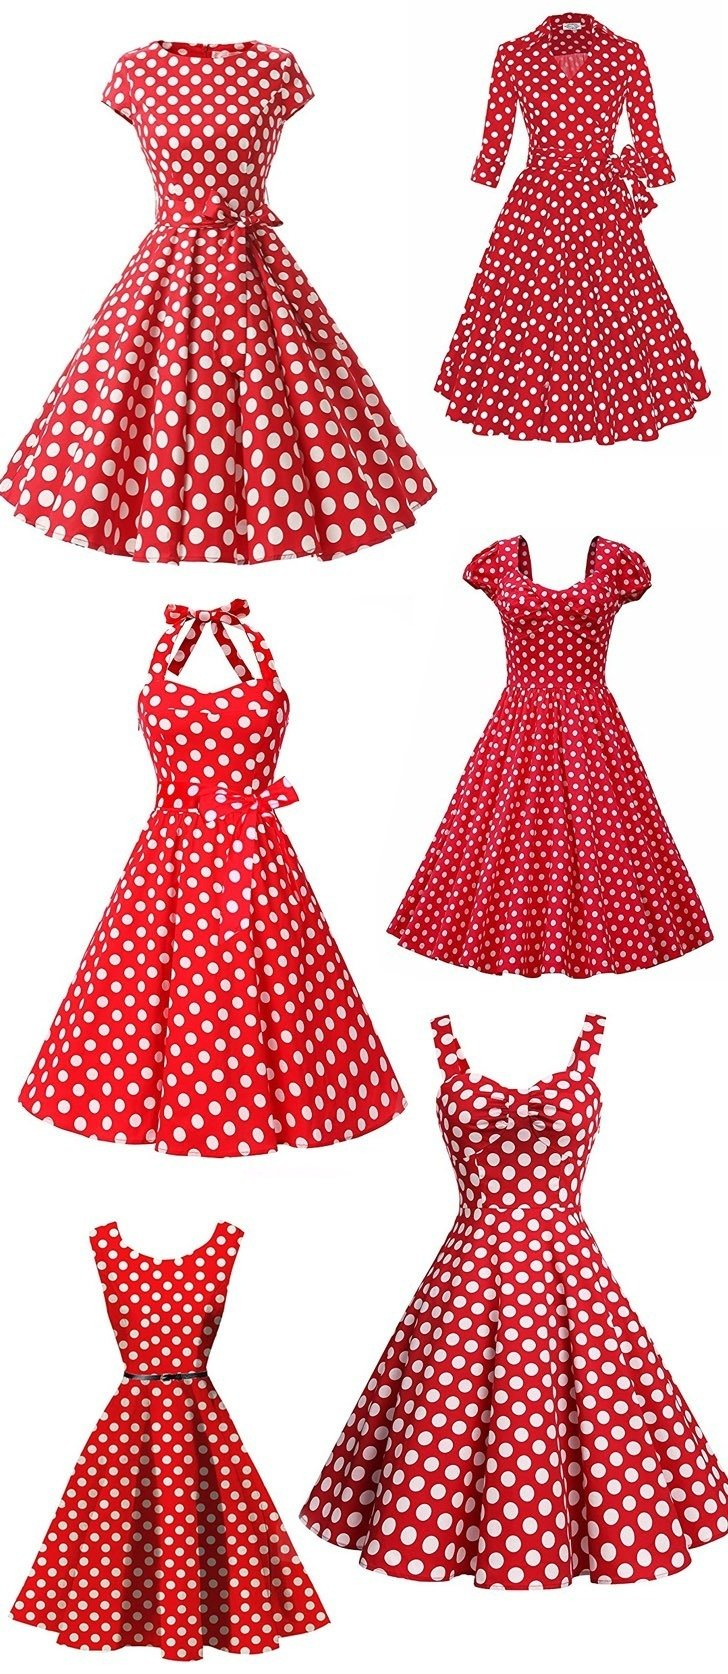 Diy minnie mouse costume for adults dream a little bigger its more minnie mouse to me but since this whole costume is in the spirit of having things to add to the wardrobe i went with the dress i most wanted in solutioingenieria Choice Image